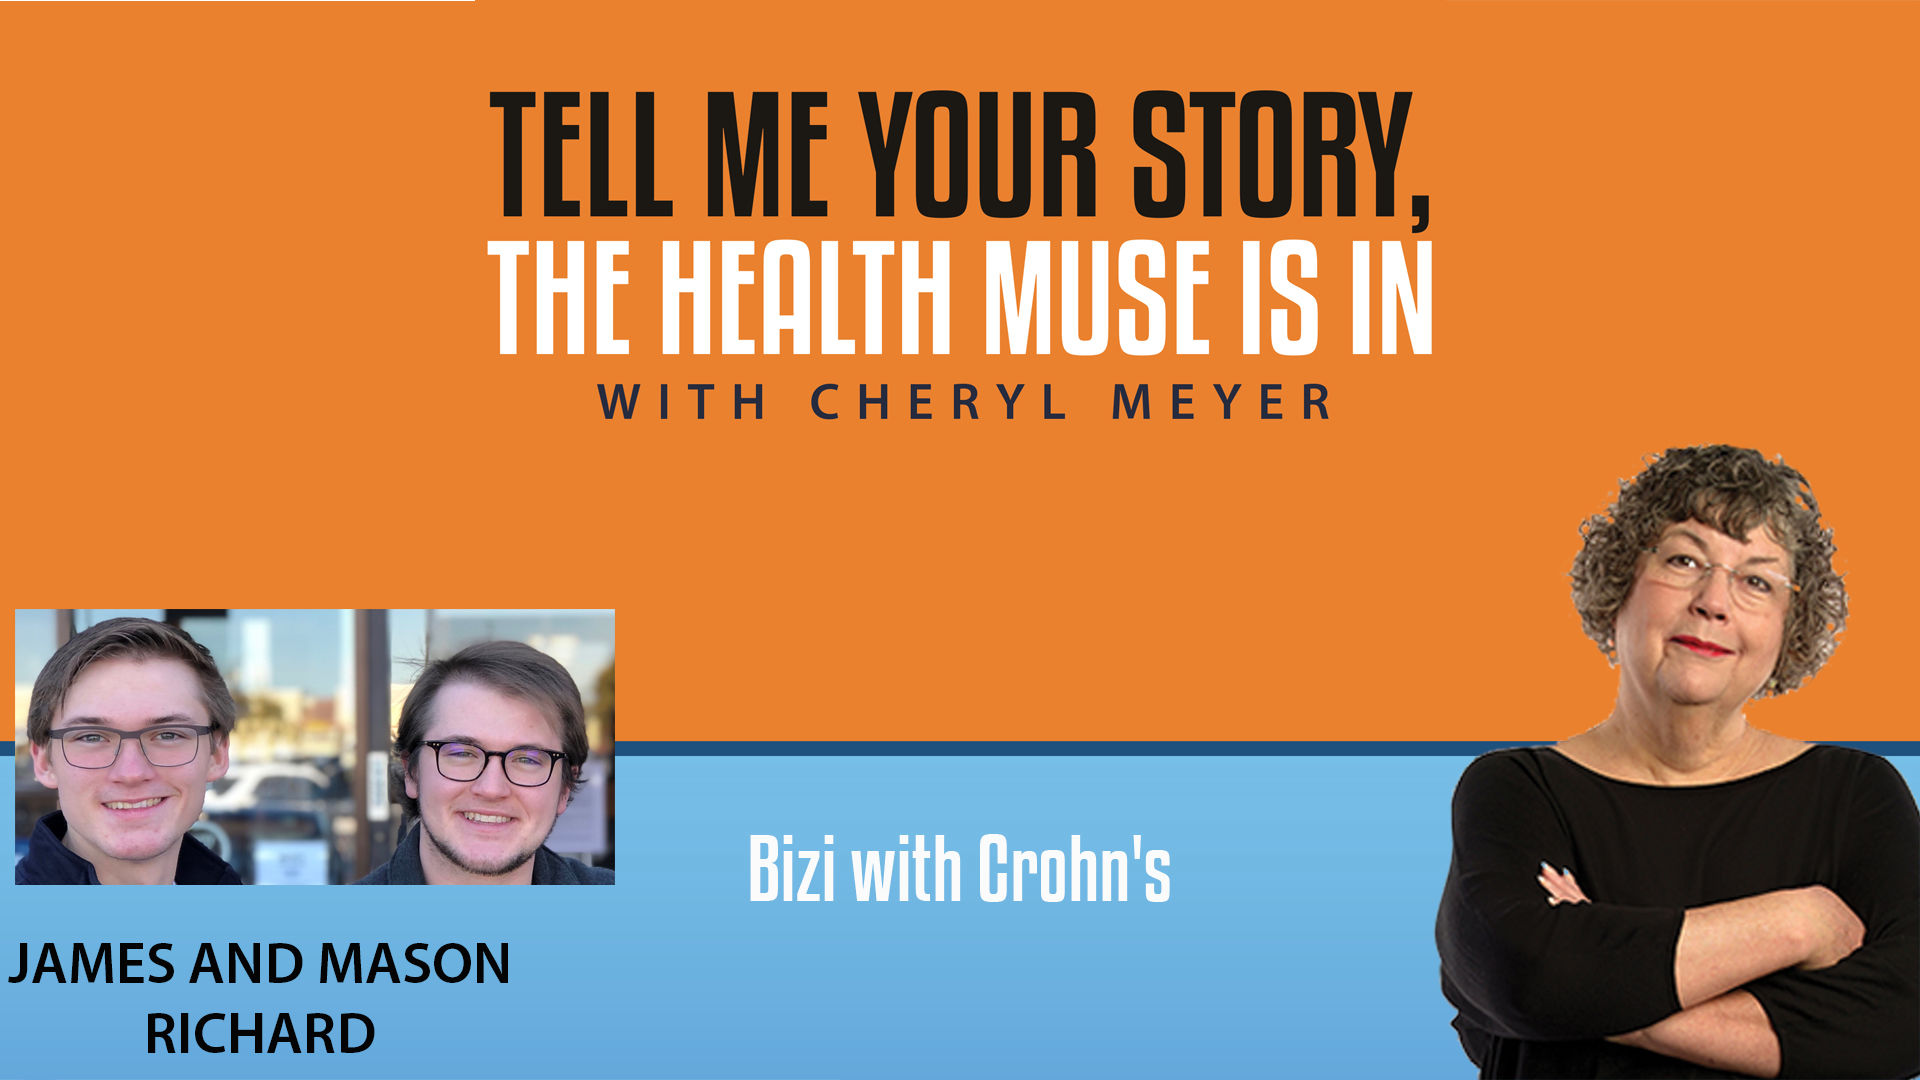 Episode 30, Tell Me Your Story- James and Mason Richard- BIZI with Chrones